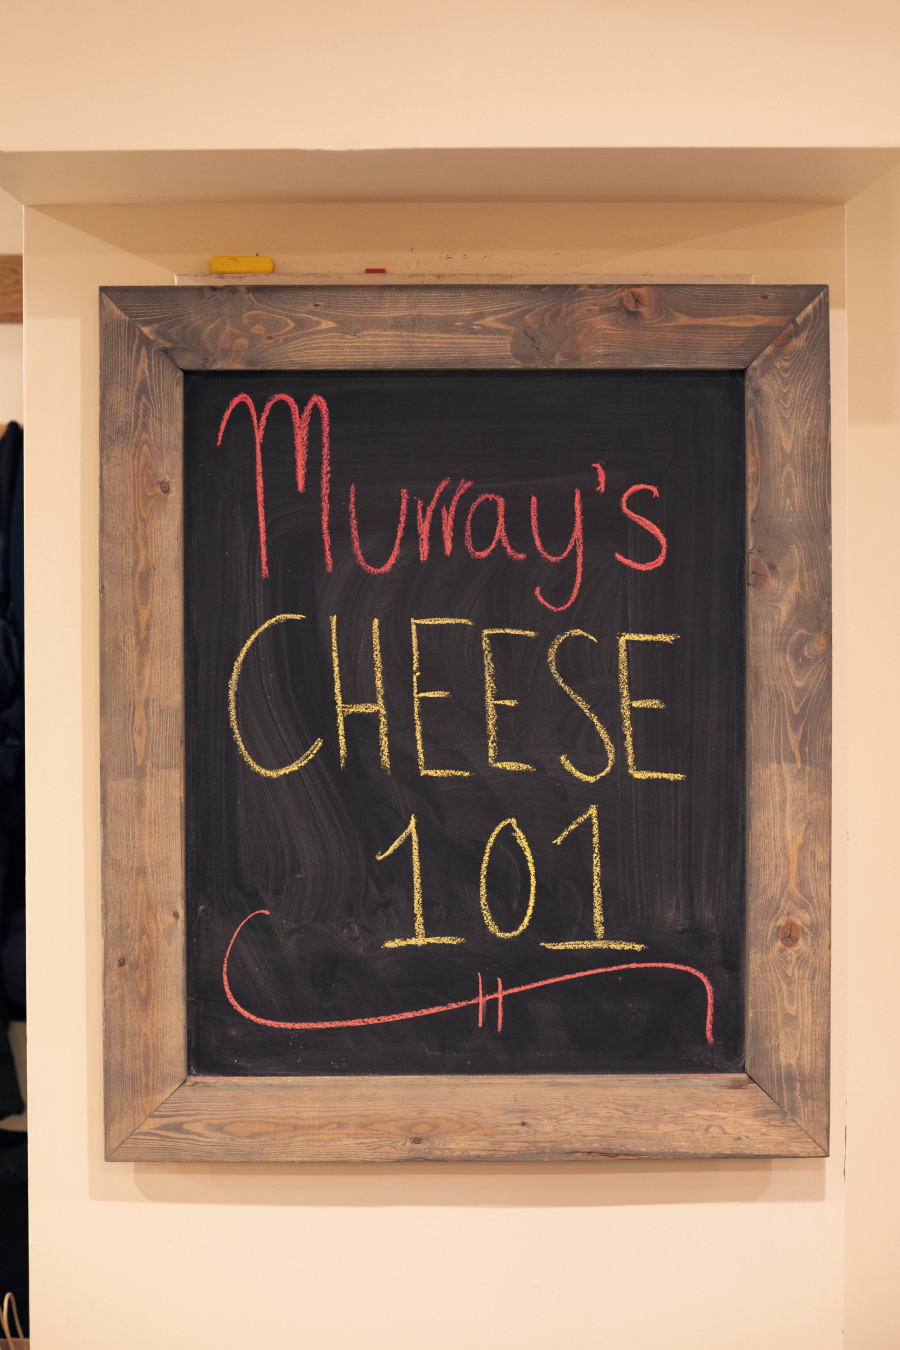 murray's cheese tasting bleeker street new york city